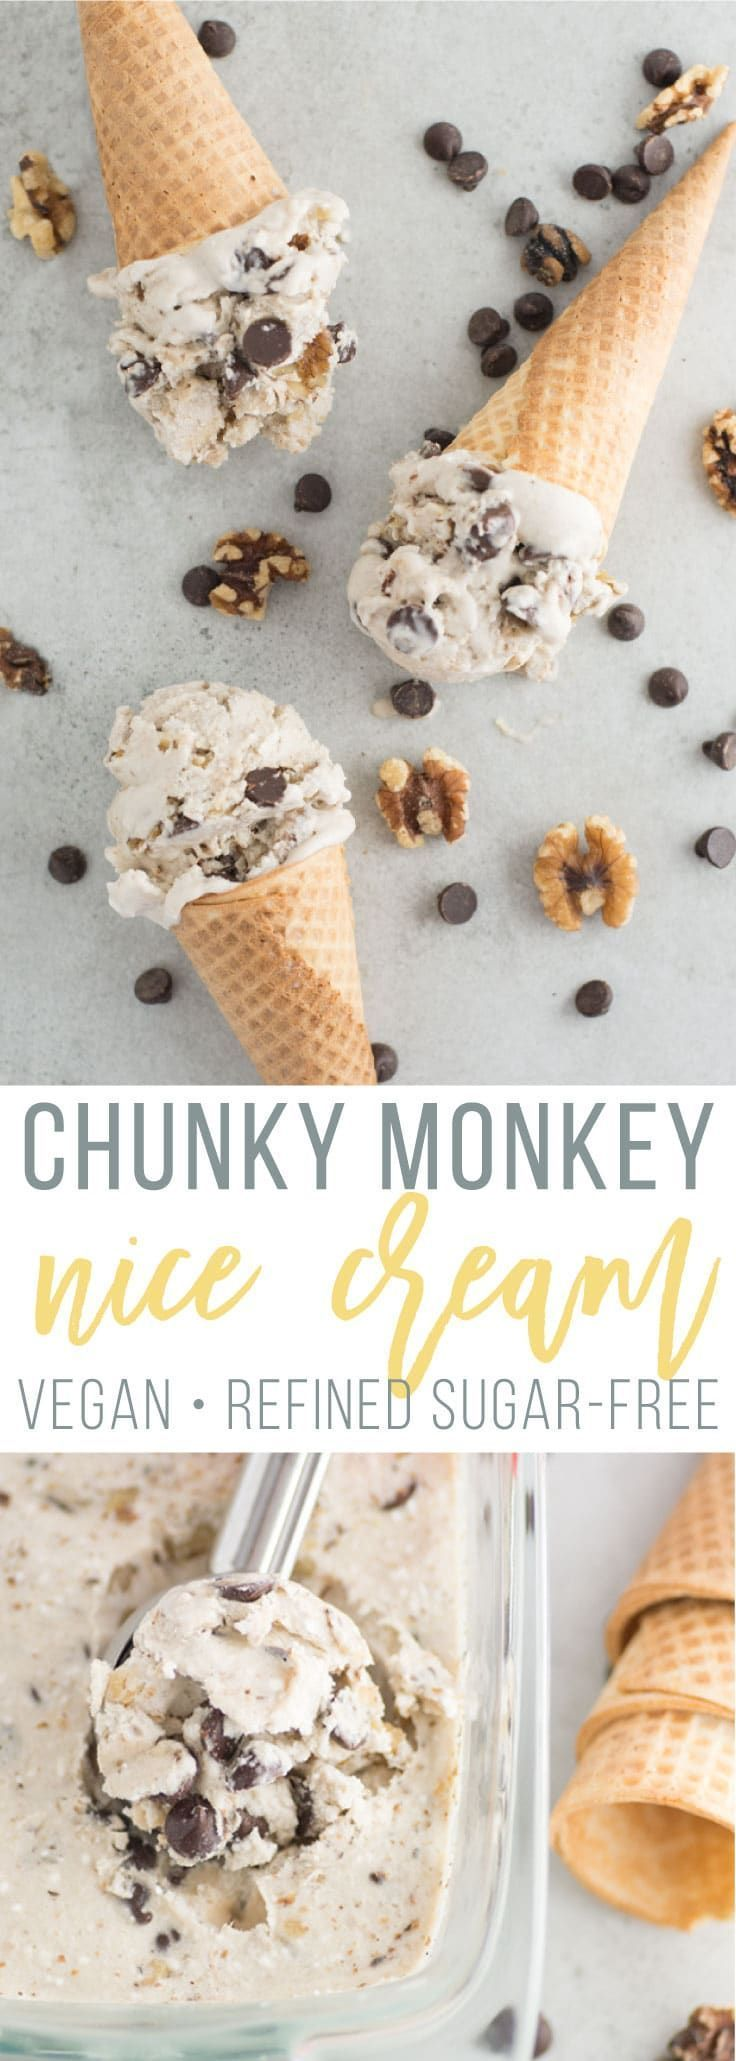 Chunky Monkey Banana Nice Cream -- This vegan dessert is so easy to make and no churn required! Packed with chocolate chips, walnuts, and a smooth banana and coconut base, this dairy-free ice cream is the perfect sweet treat! #nicecream #vegandessert #vegan #icecream #chocolate #summer   mindfulavocado